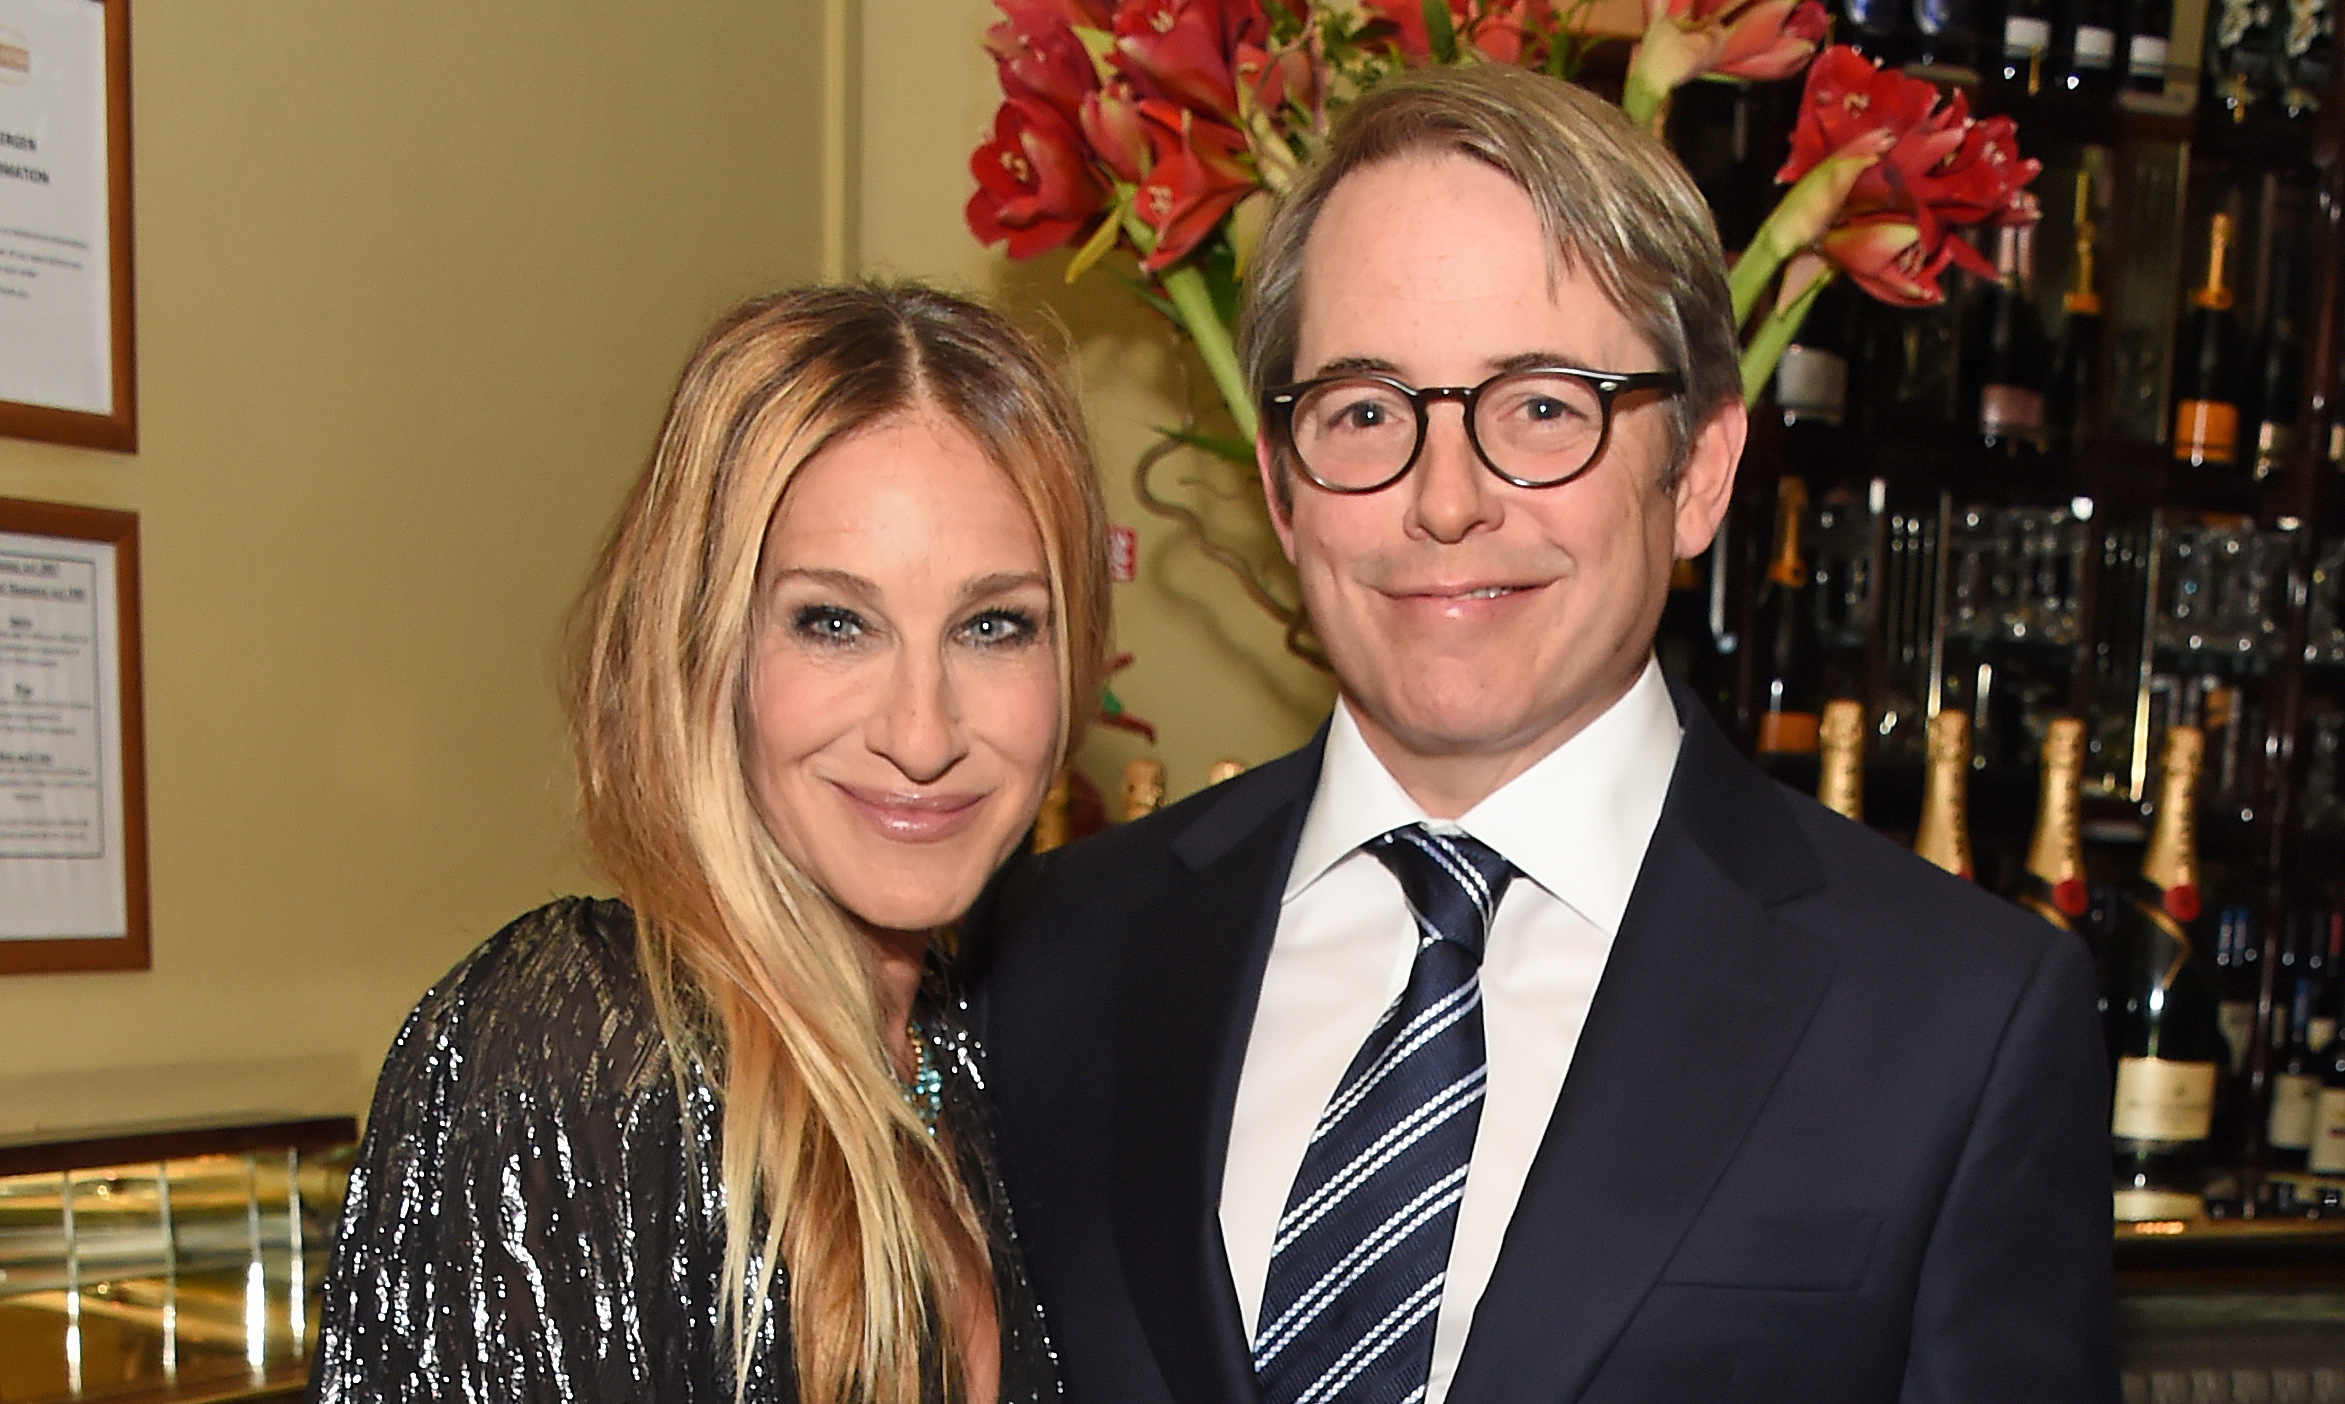 AwwSarah Jessica Parker and Husband Matthew Broderick Pack on the PDA at London Event